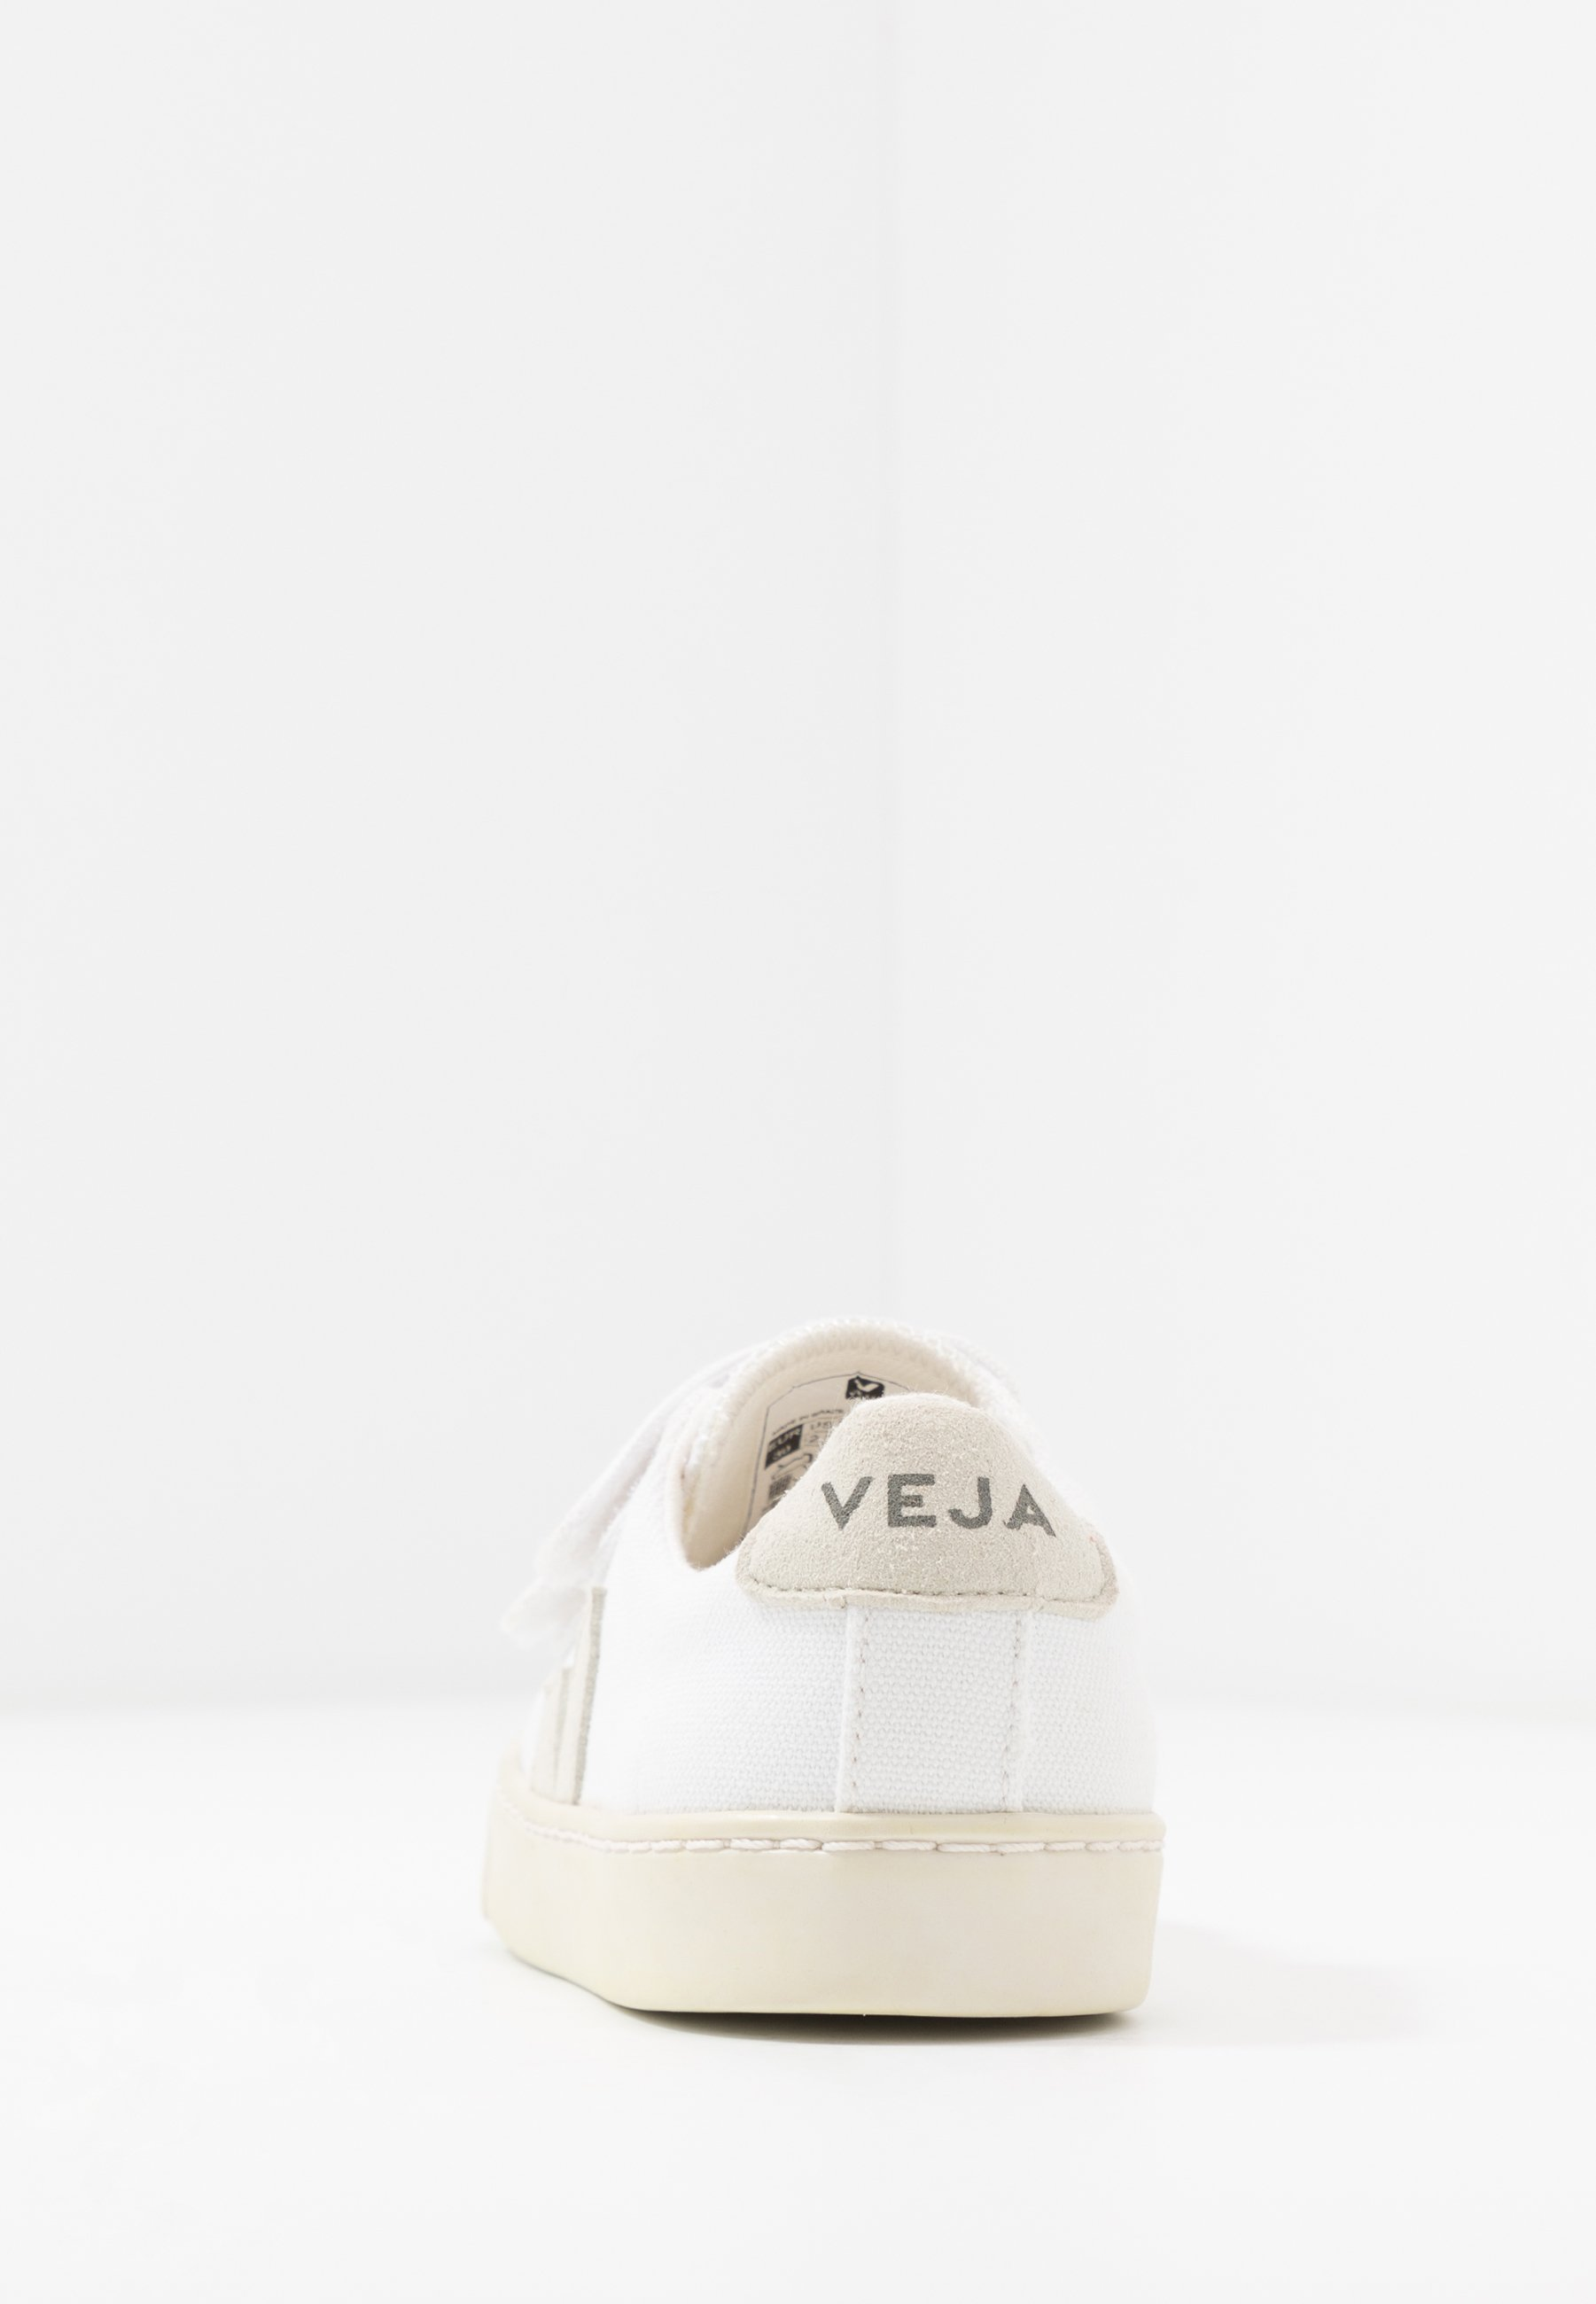 Veja SMALL ESPLAR - Sneakers - white/natural